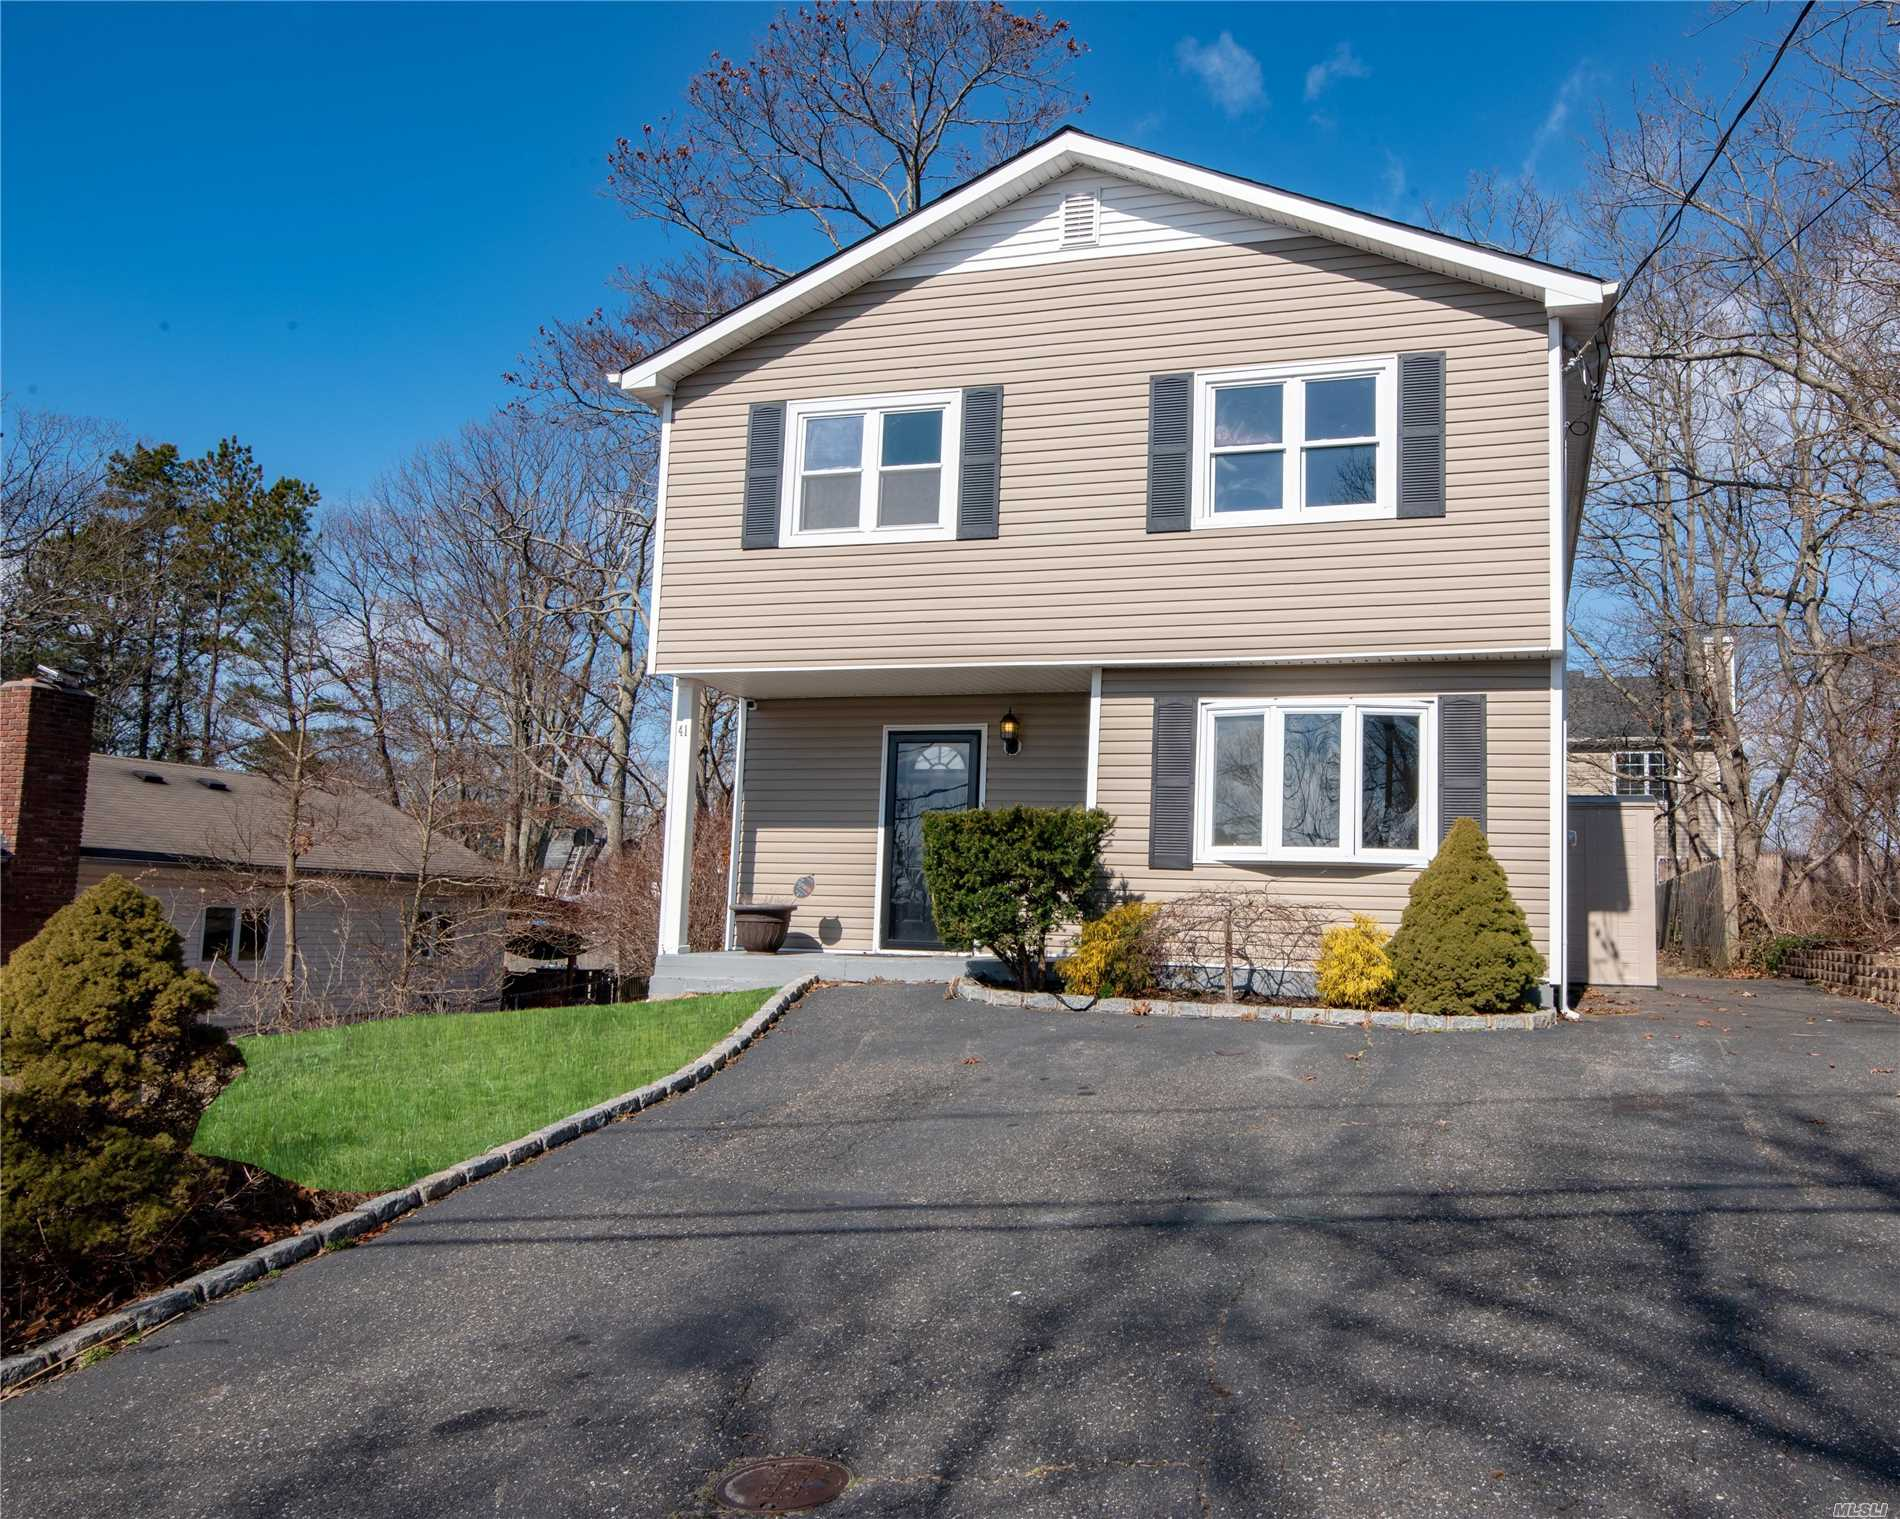 Spectacular Colonial With All The Bells And Whistles. Fully Renovated With Granite/Cherry/Steel/Mosaic Splash Kitchen/Updated Baths/Updated Flooring/Full Exterior Reno With Windows Roof And Siding Done/Double Wide B Block Driveway/And So Much More